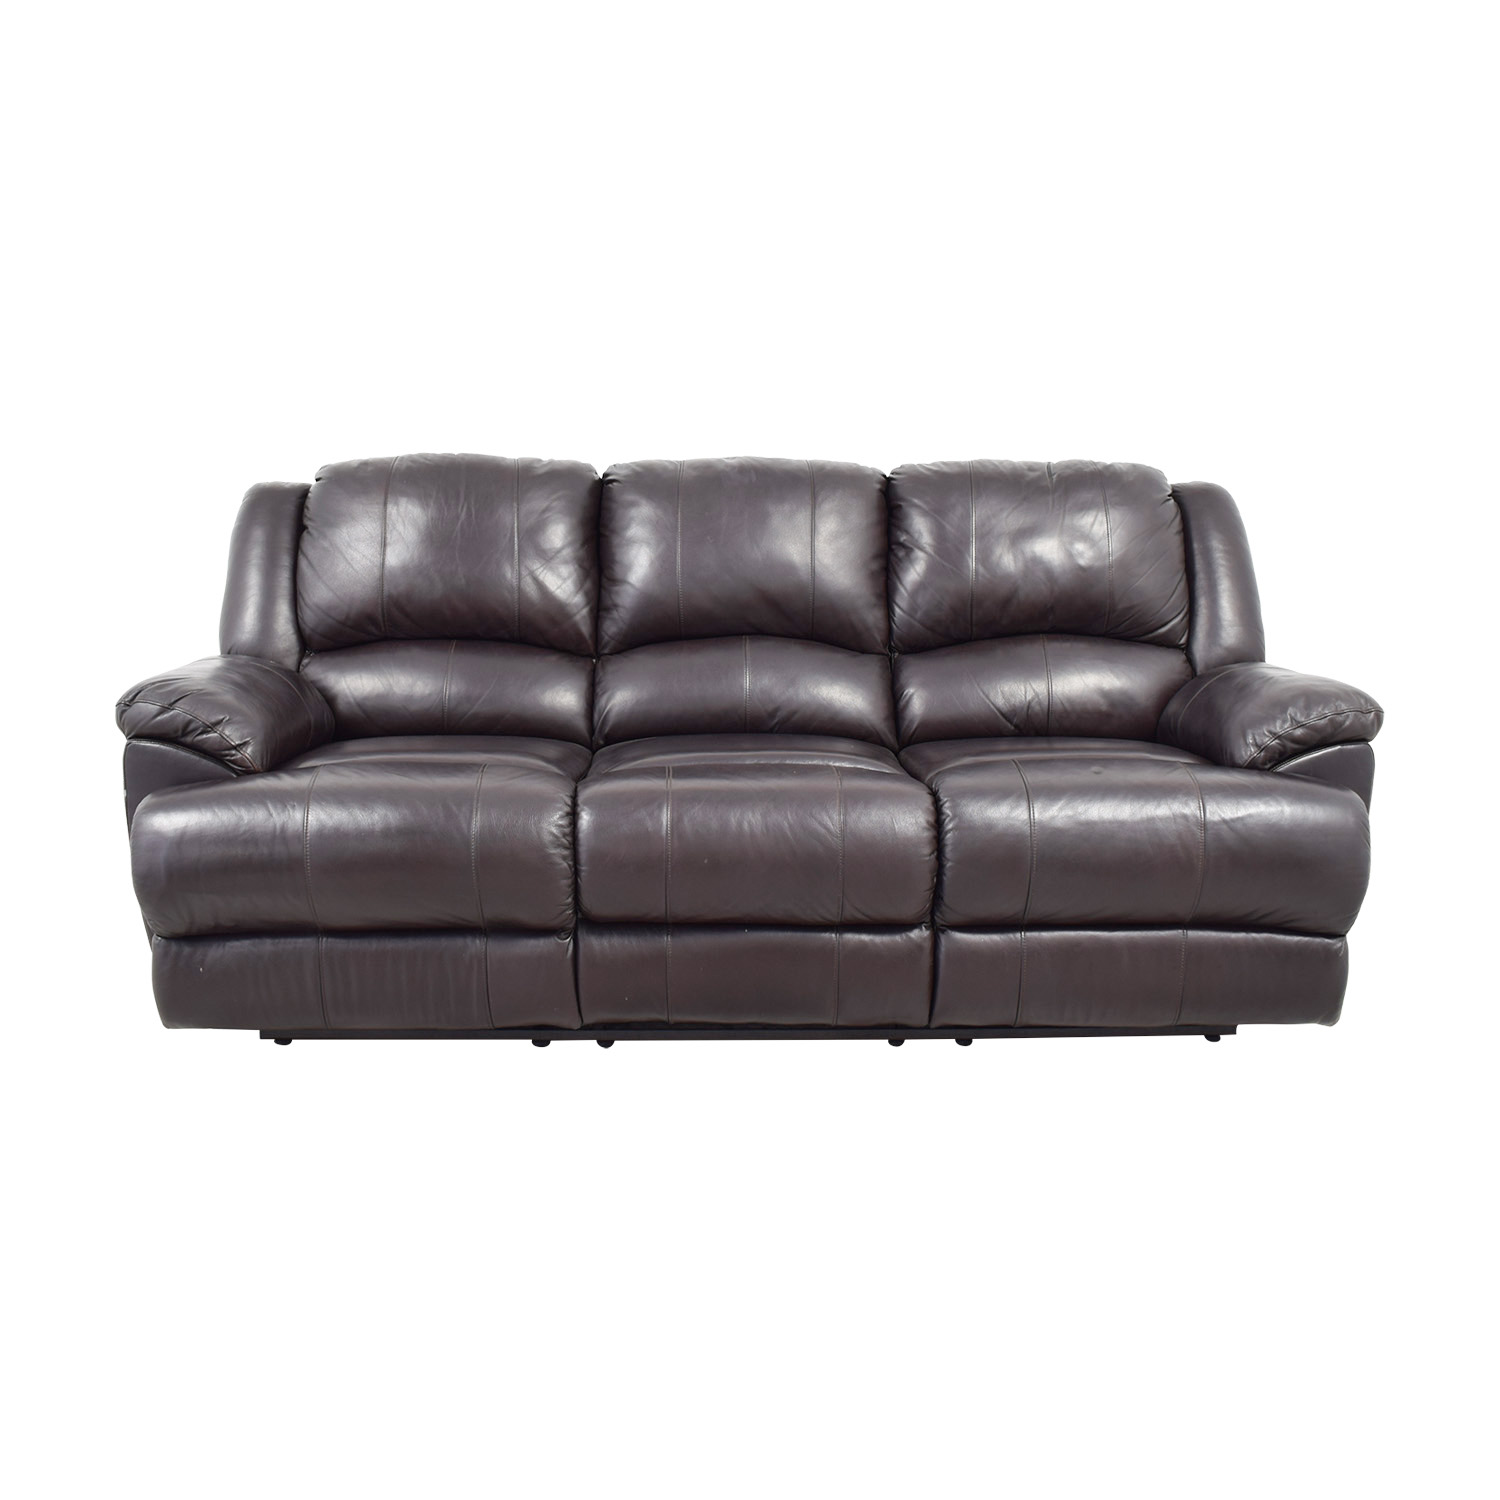 Ashley Furniture Ashley Furniture Black Leather Reclining Couch for sale